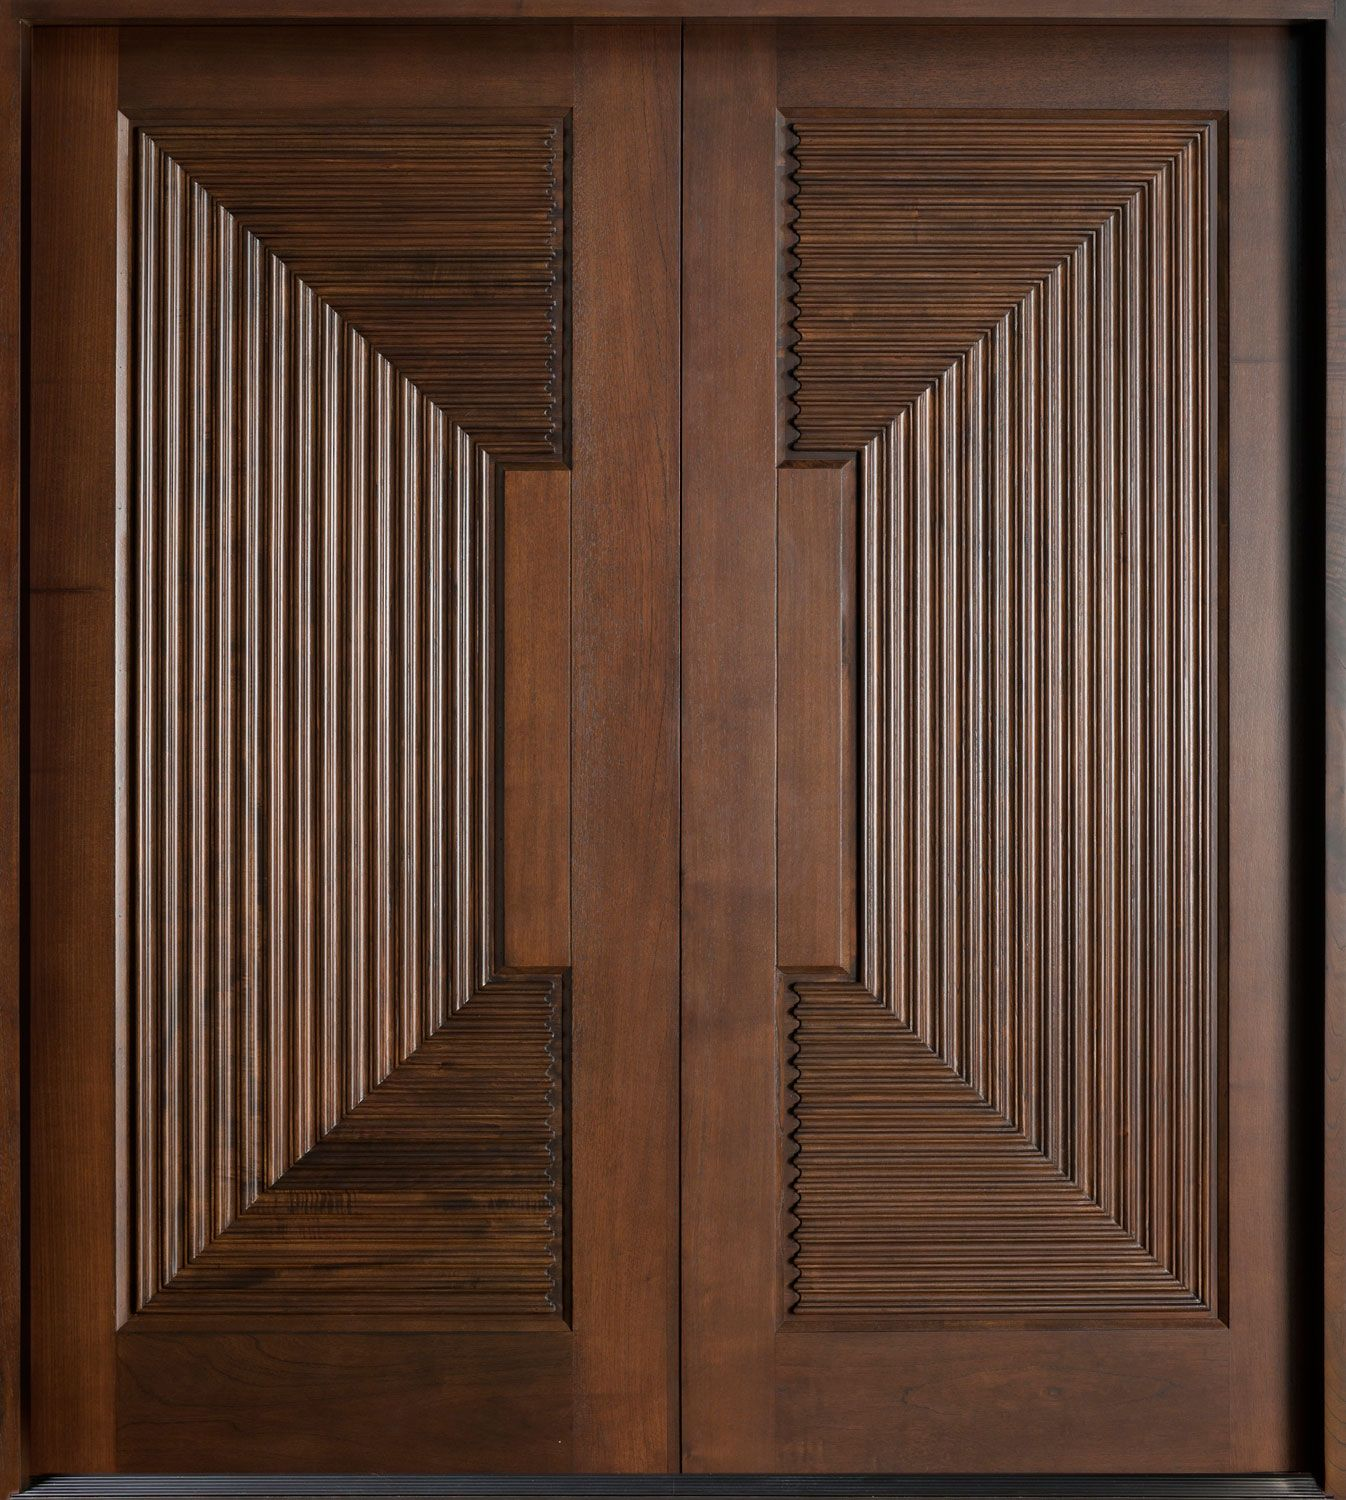 Peachy Picturesque Espresso Wooden Double Modern Front Door With Carving Largest Home Design Picture Inspirations Pitcheantrous